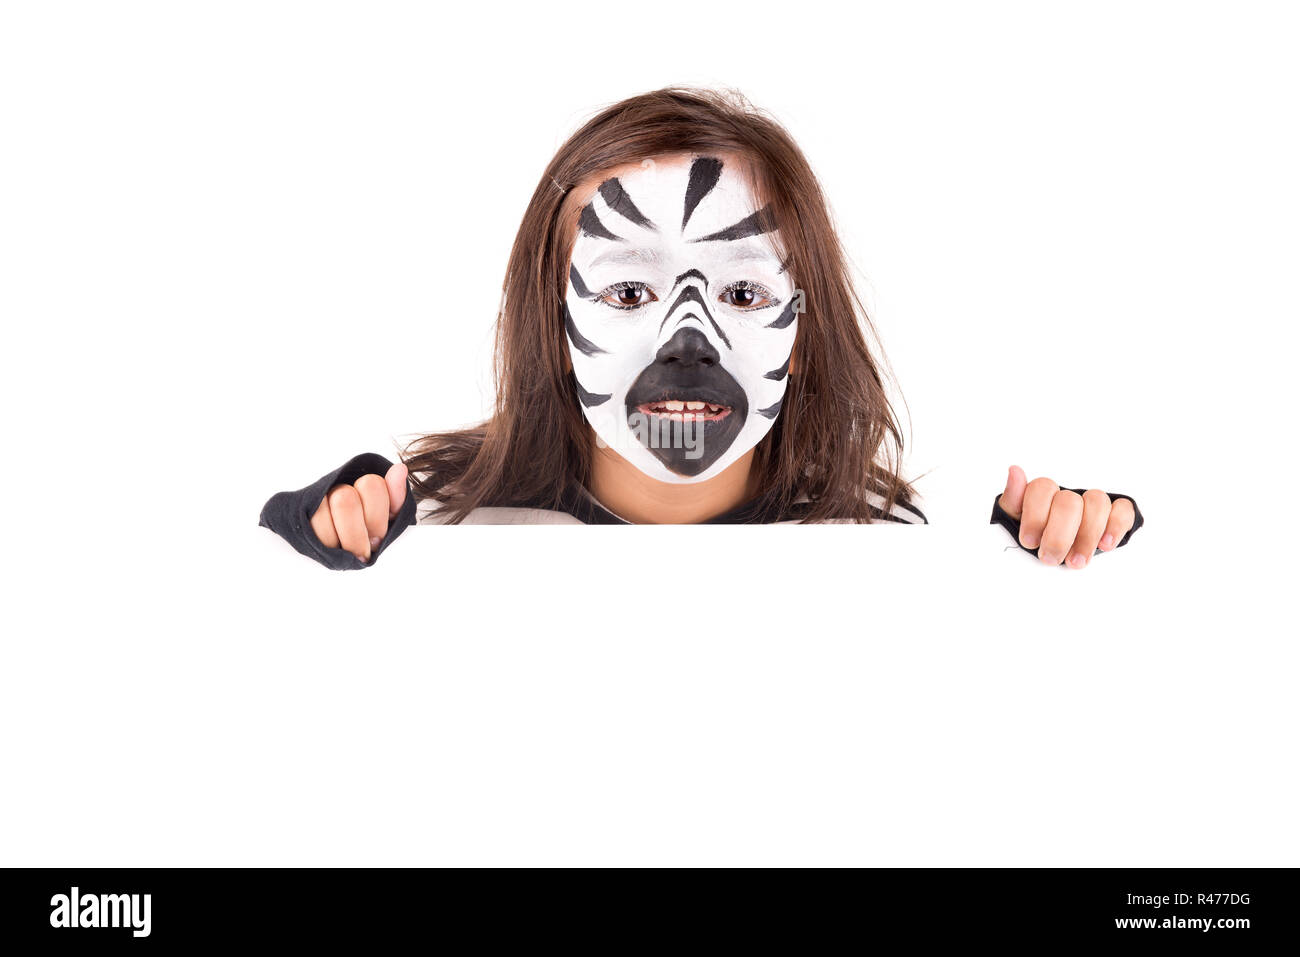 Children Zebra Face Painting High Resolution Stock Photography And Images Alamy